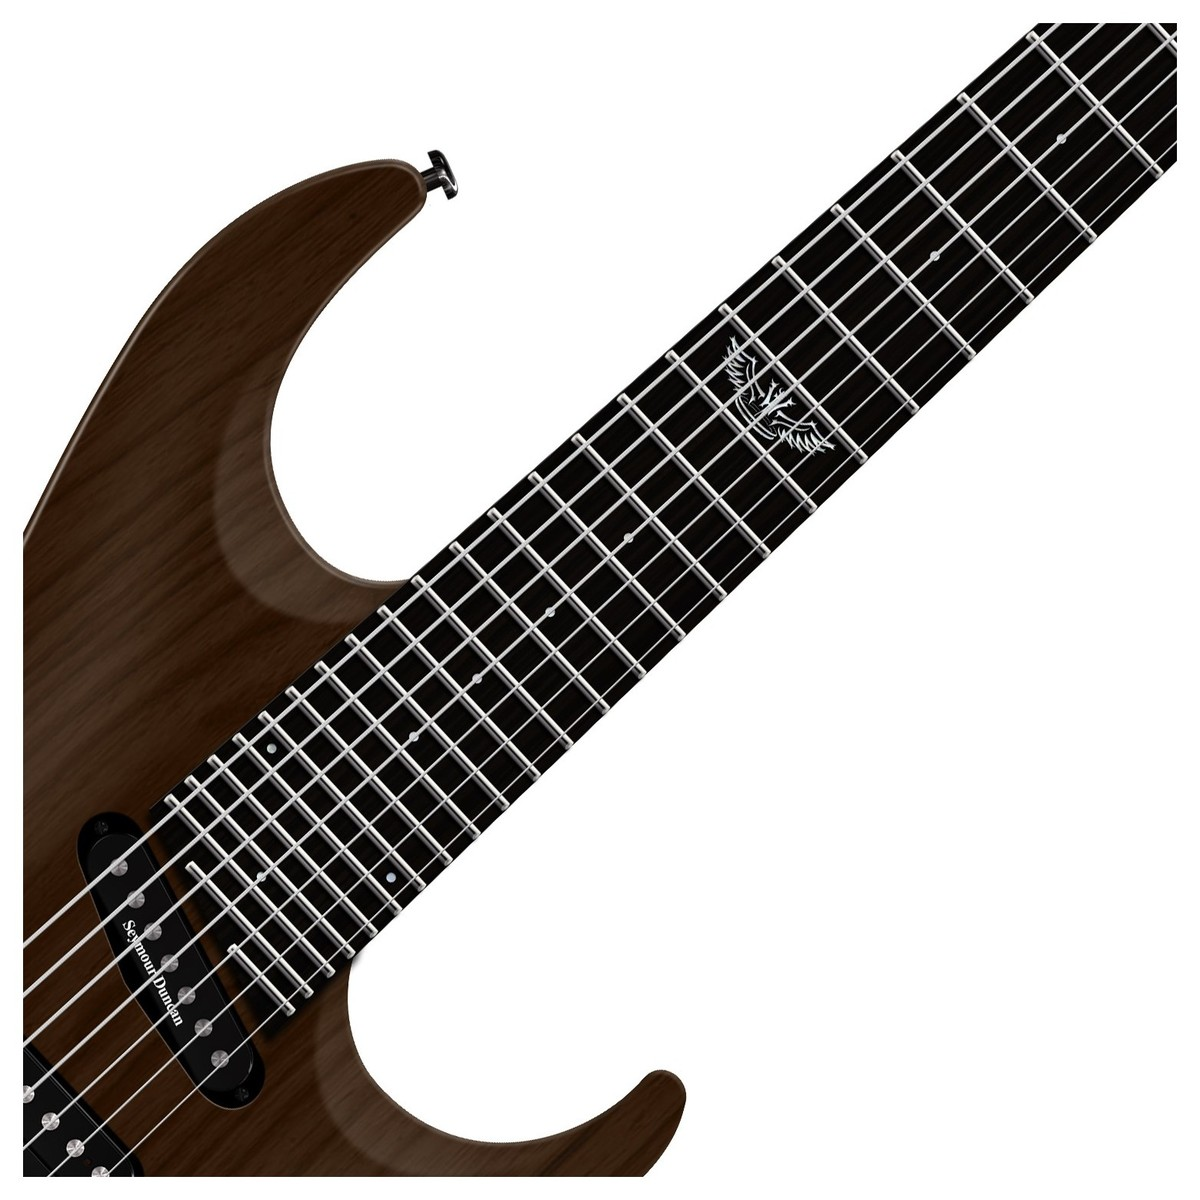 disc washburn parallaxe pxs29 7frdsam electric guitar at gear4music. Black Bedroom Furniture Sets. Home Design Ideas